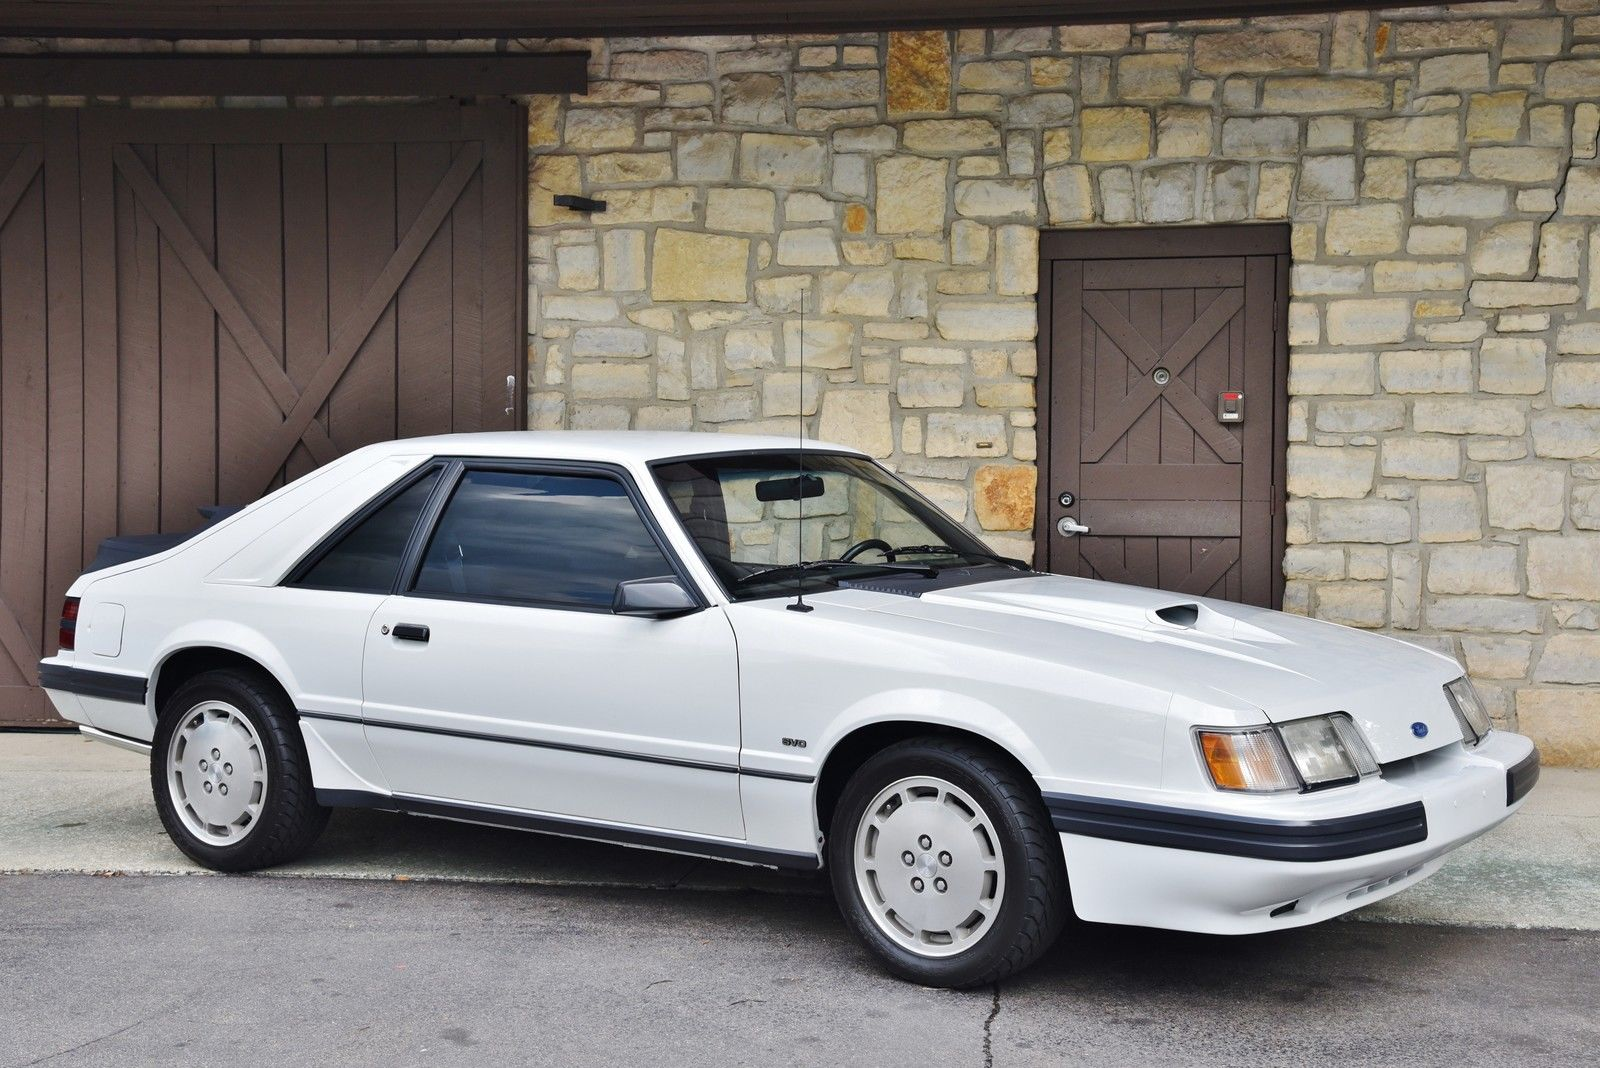 mustang svo 1986 ford turbo low mileage turbo tuesday. Black Bedroom Furniture Sets. Home Design Ideas